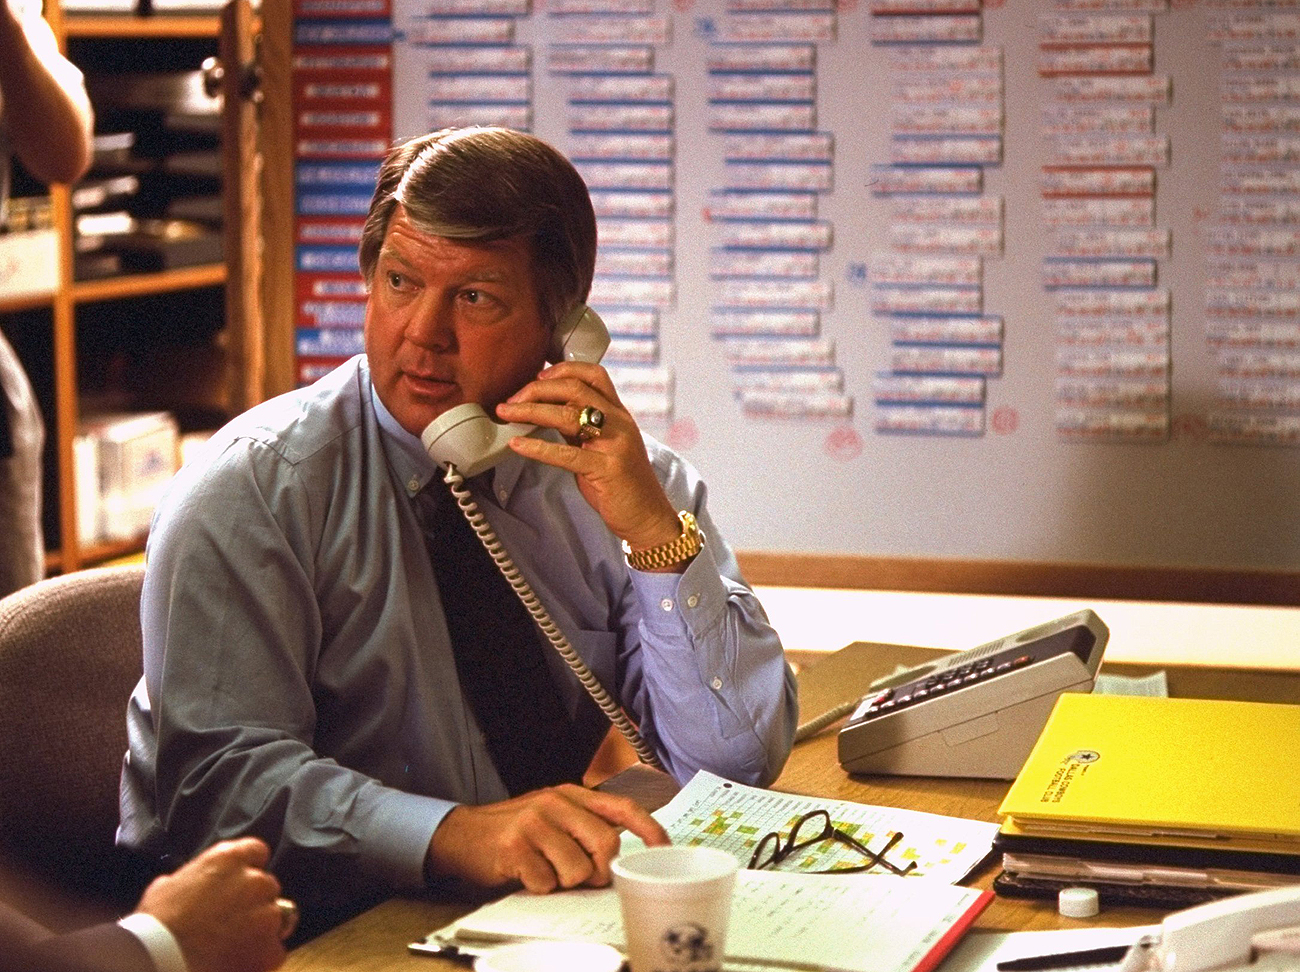 The draft strategy Jimmy Johnson implemented during his time with the Cowboys is one the Browns appear to be emulating.